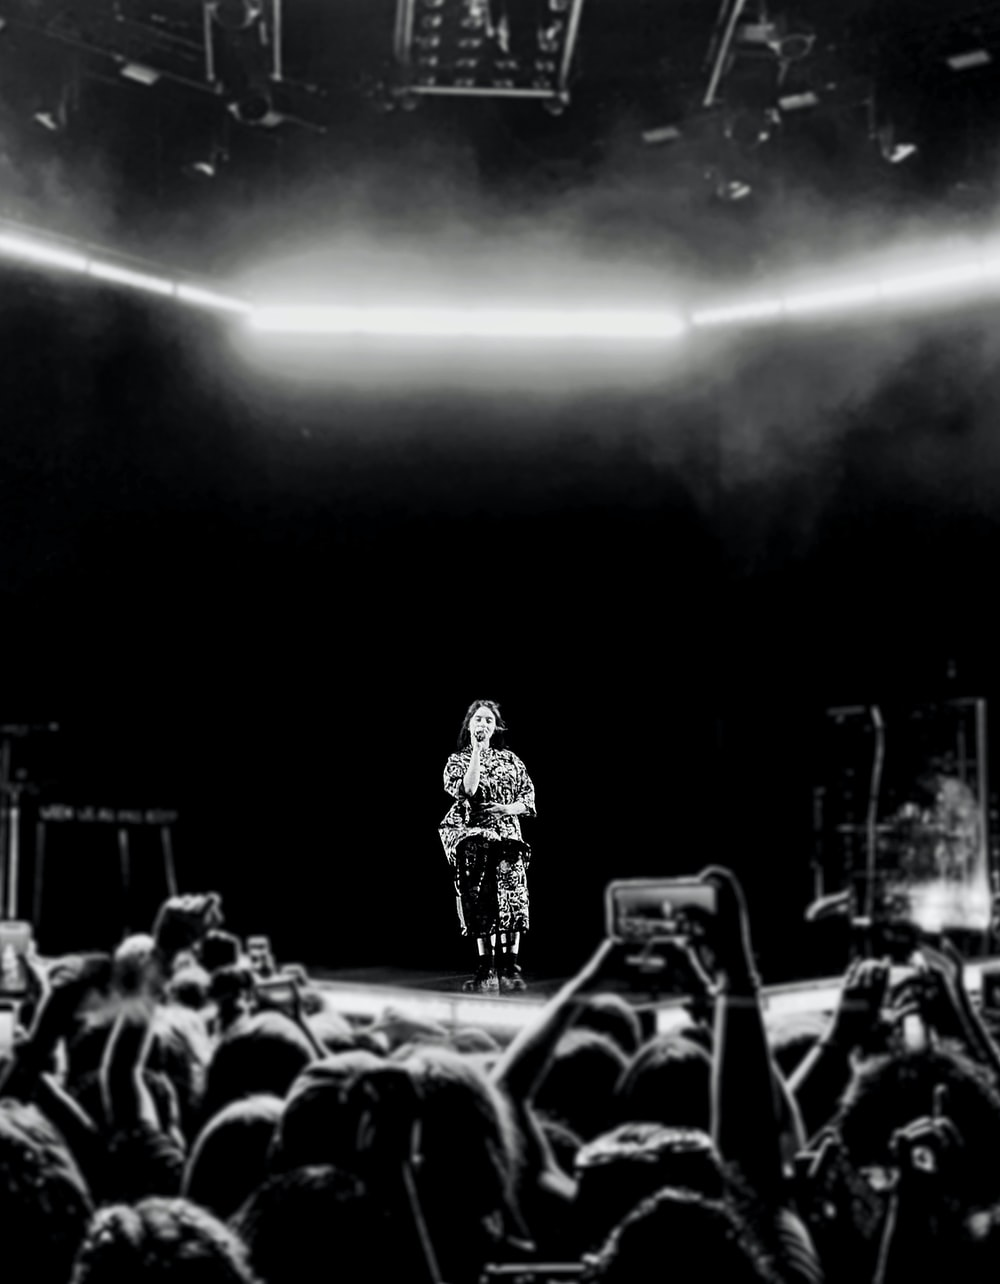 greyscale photography of person performing on stage